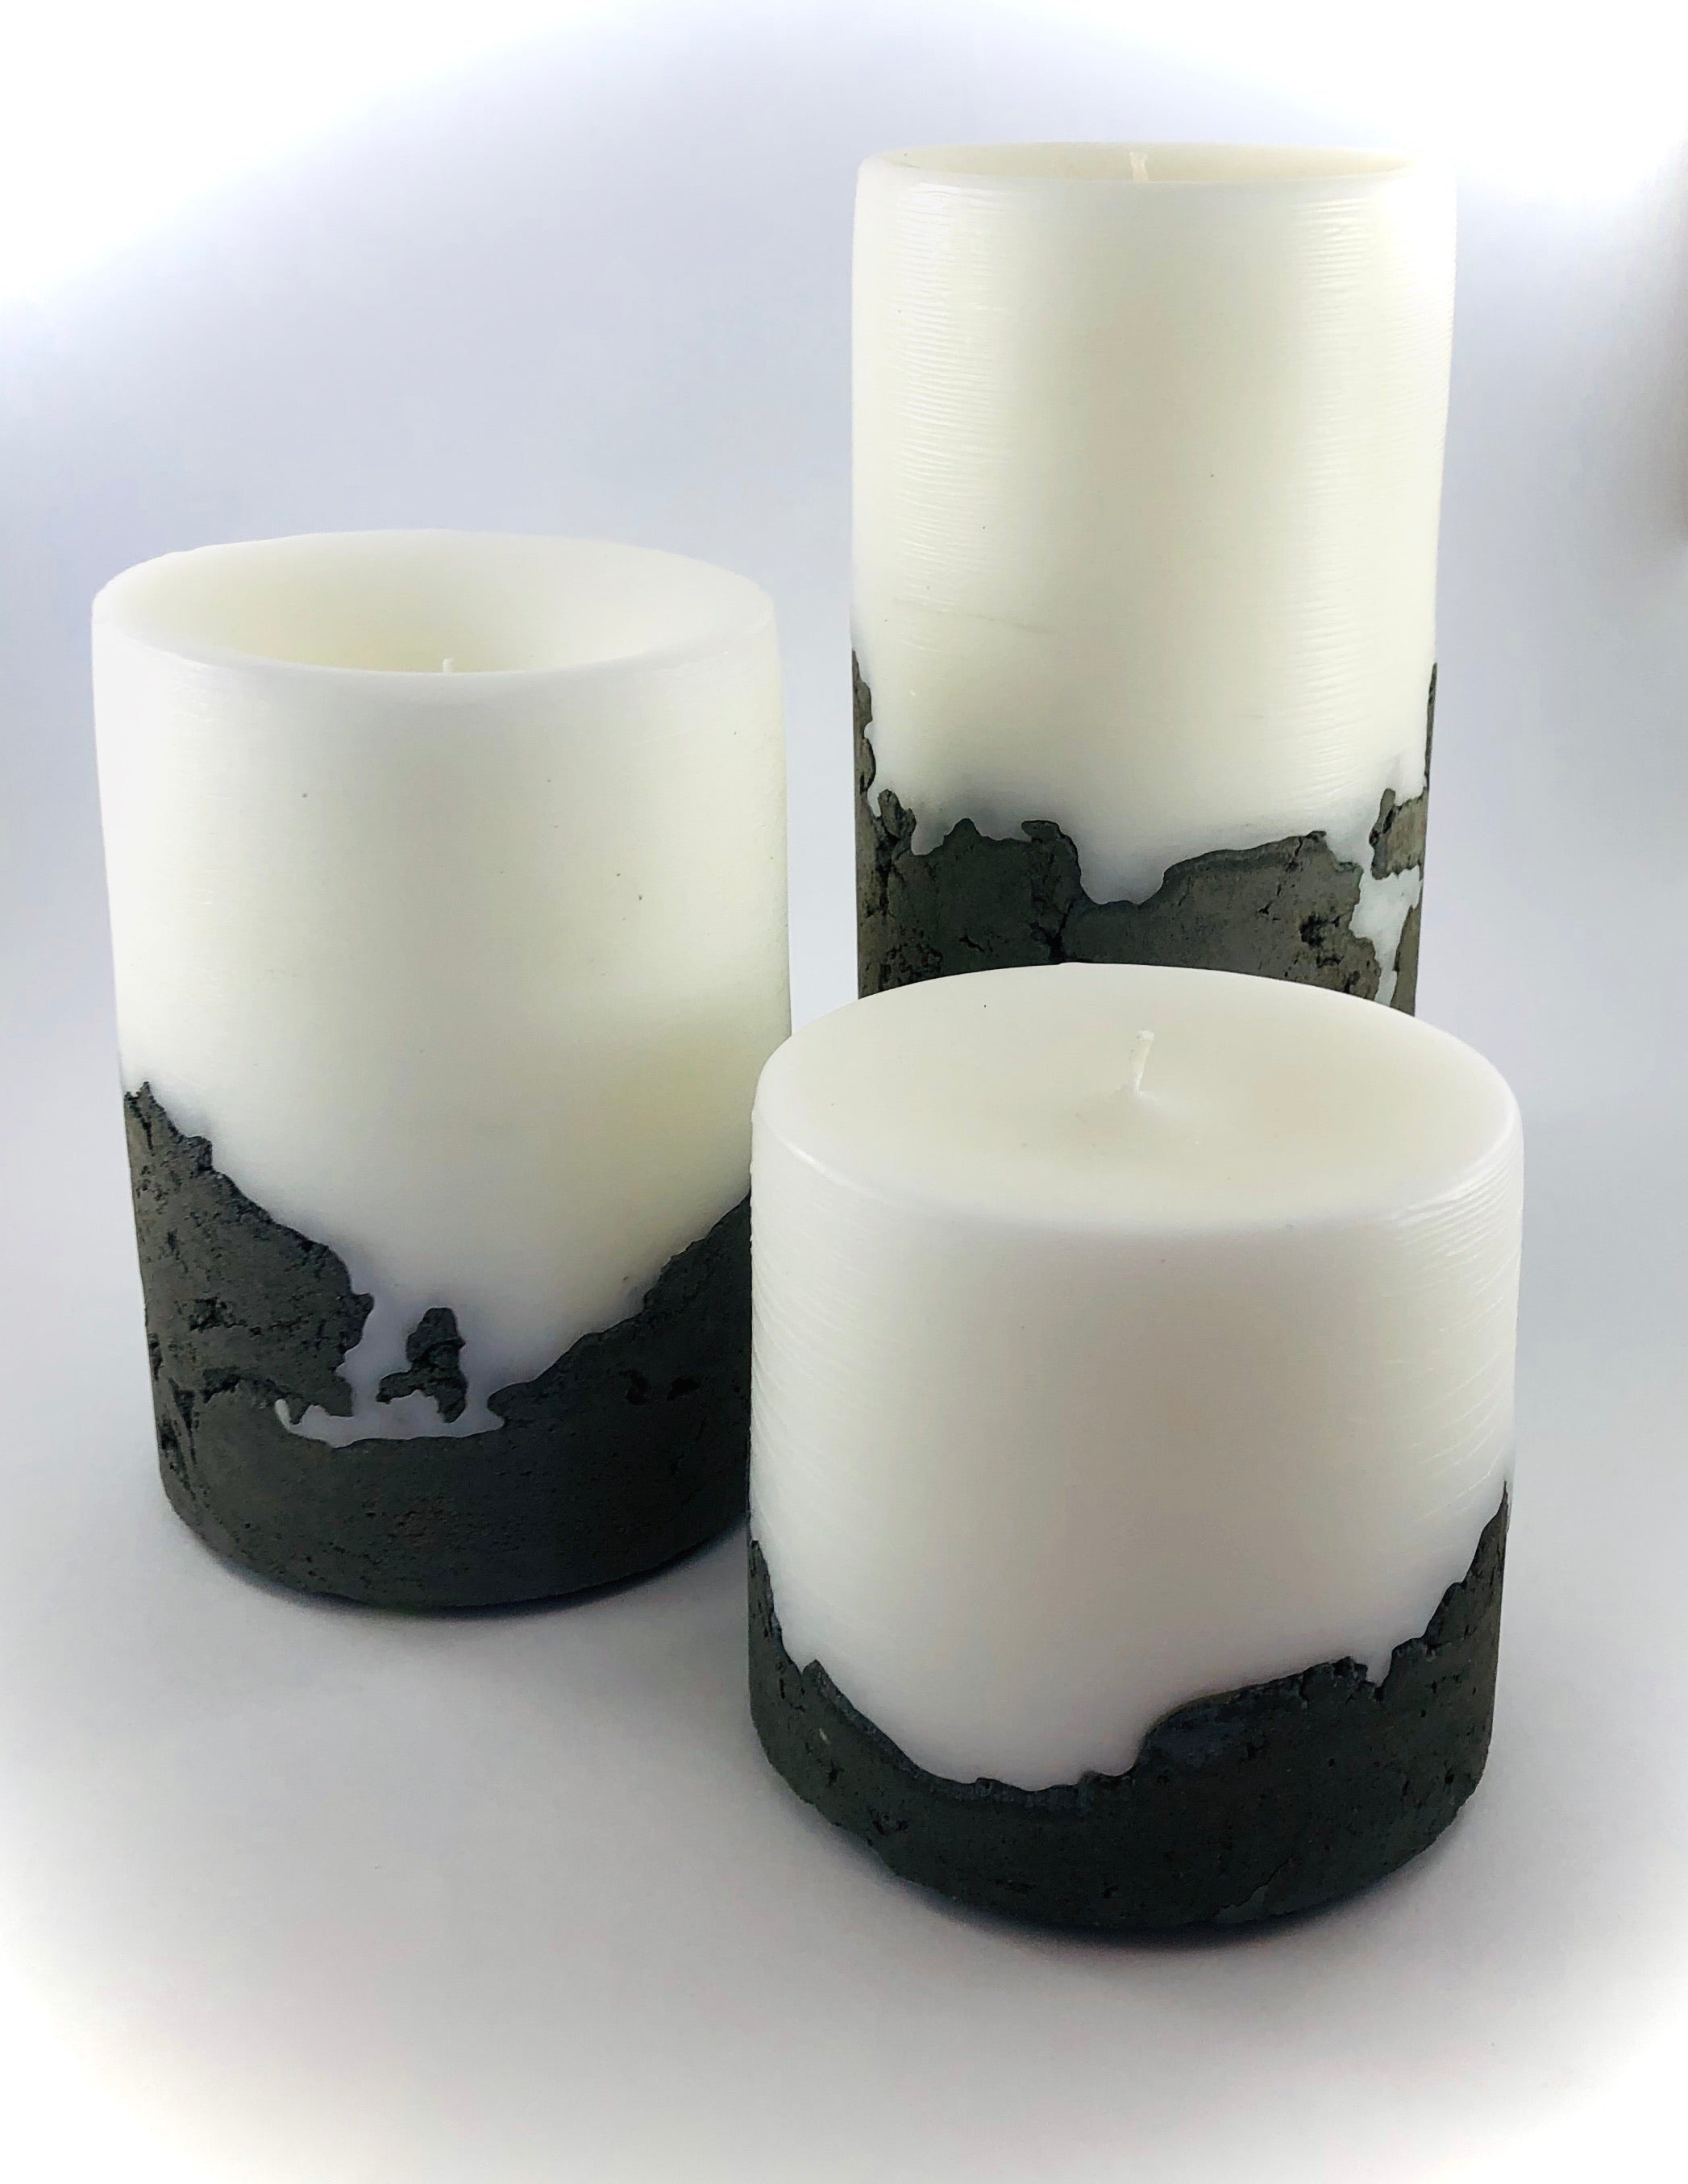 Hand-poured Cement Based Artisan Candle